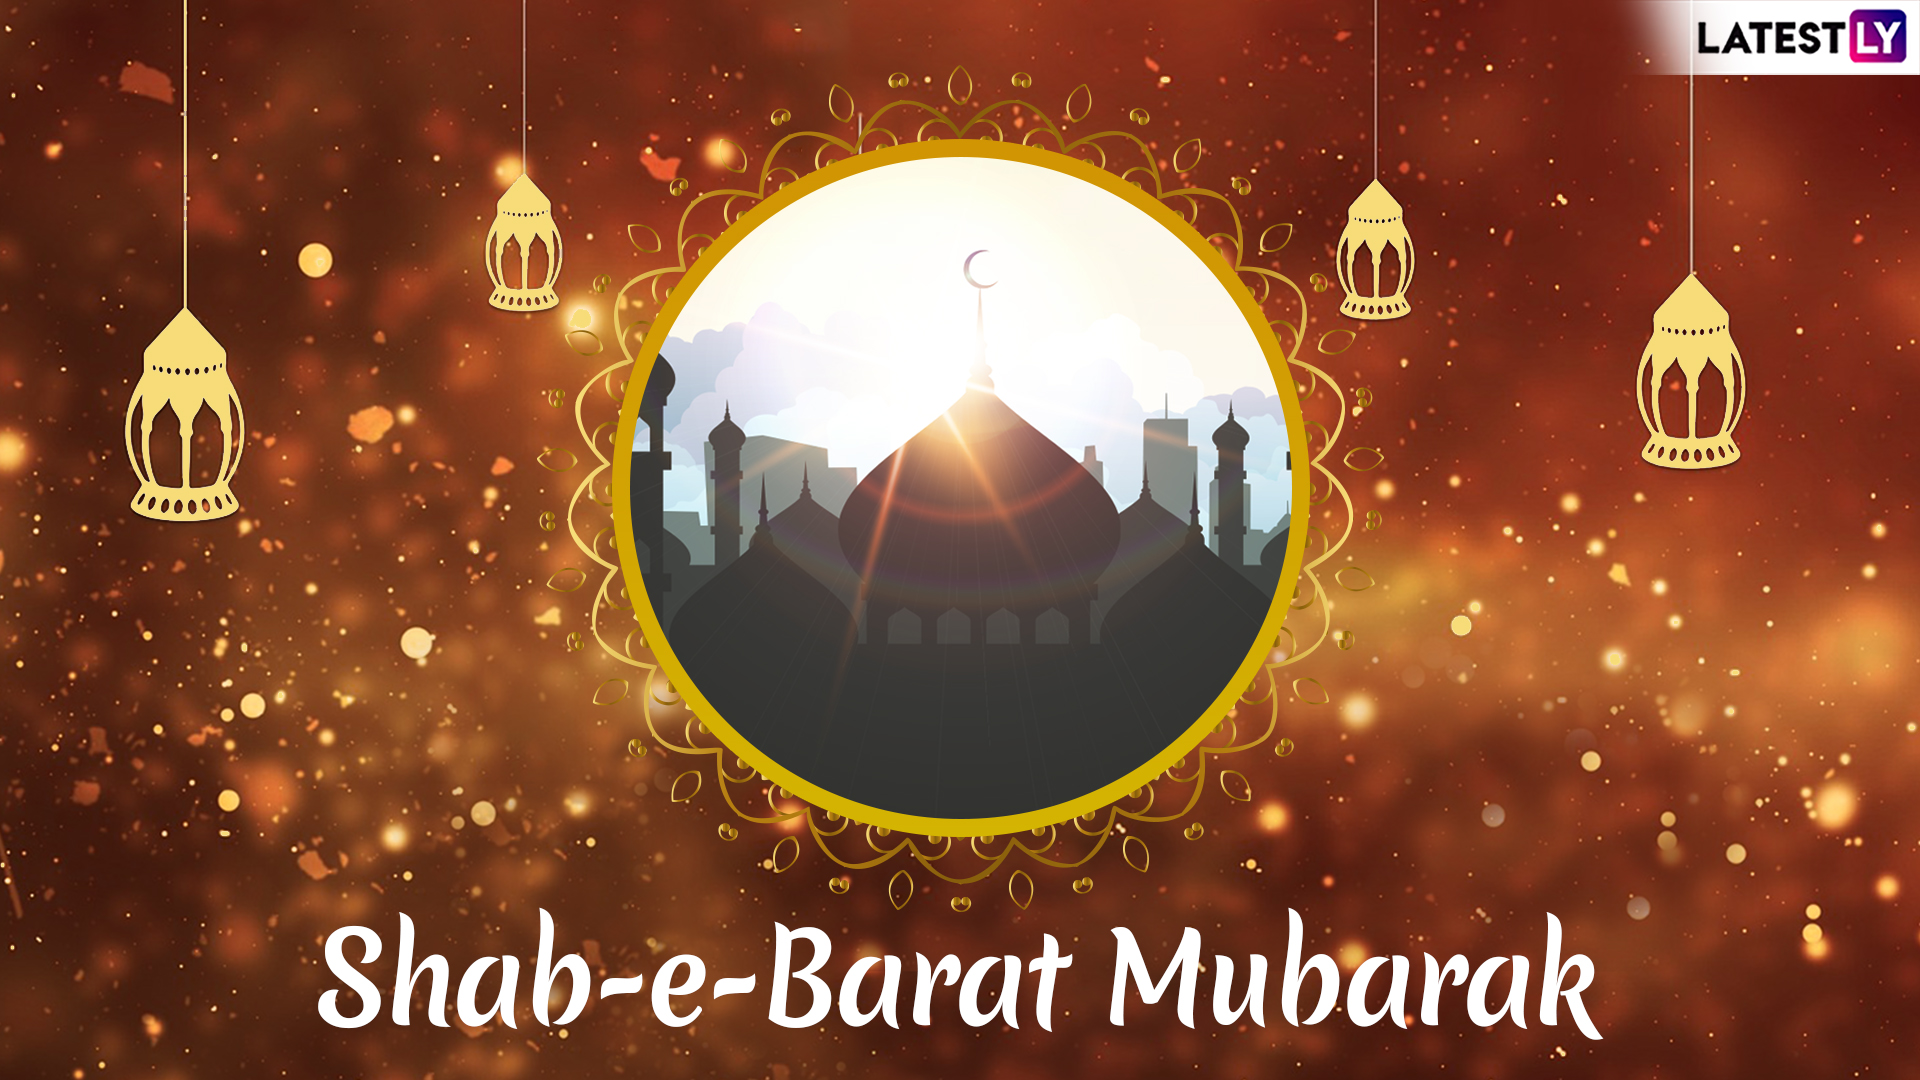 Shab-E-Barat Mubarak : IMAGES, GIF, ANIMATED GIF, WALLPAPER, STICKER FOR WHATSAPP & FACEBOOK